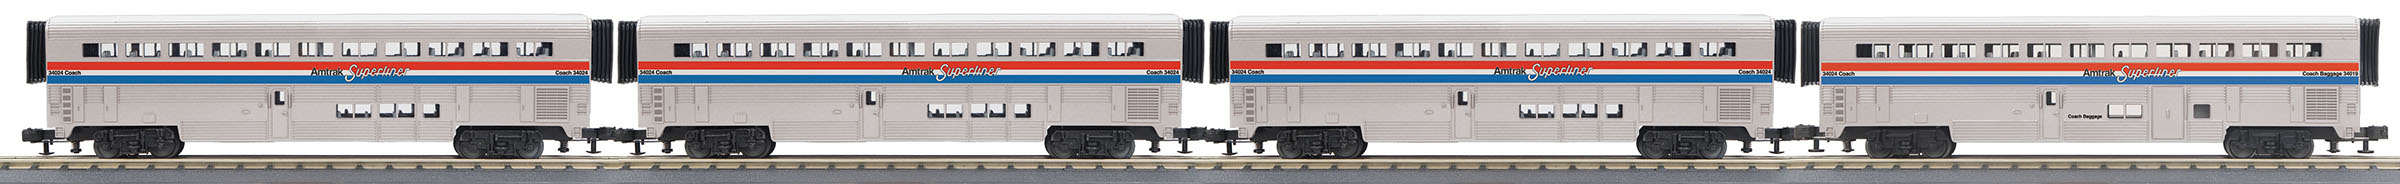 MTH 306535 O-31 SuperLiner Set Amtrak/Phase III #31019 4